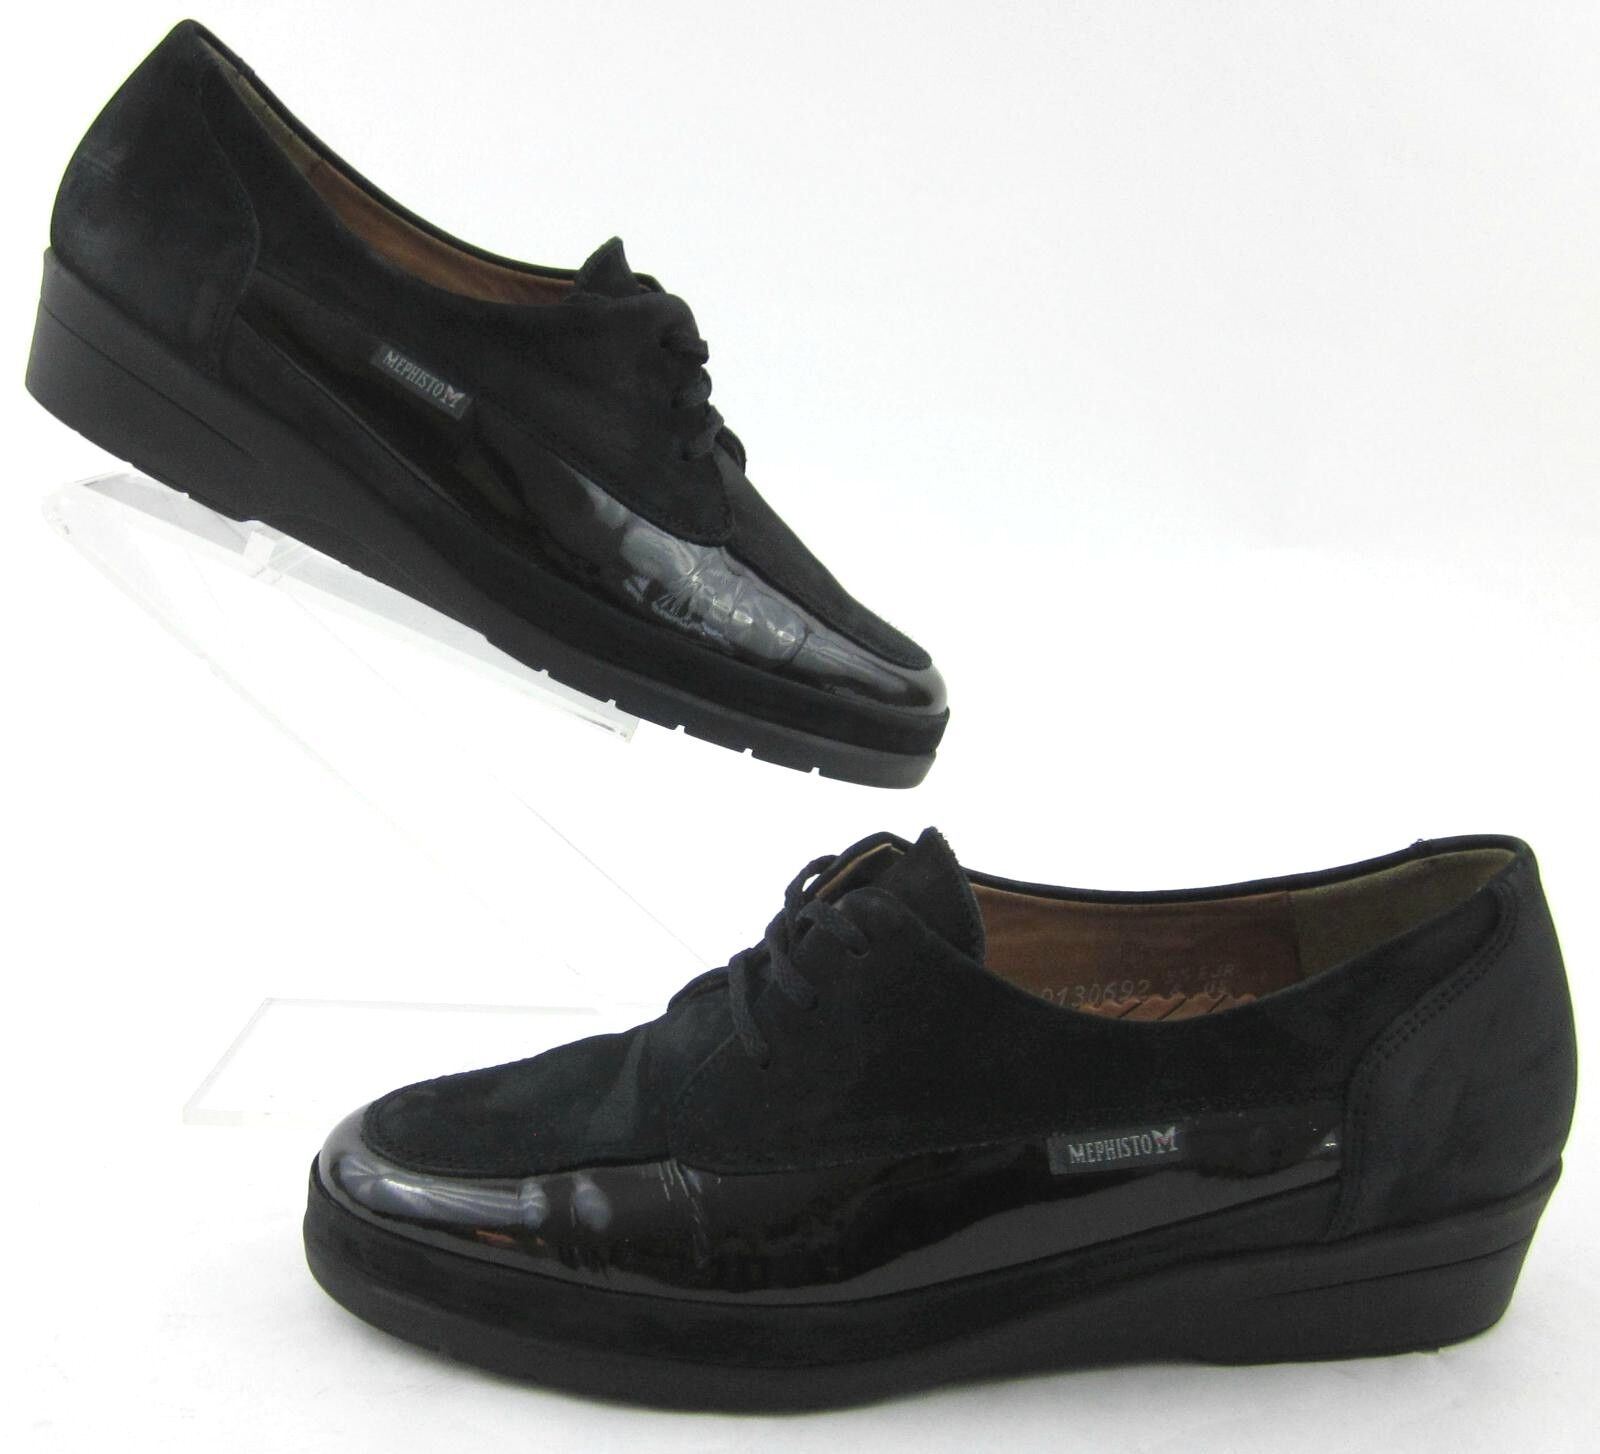 Mephisto Womens Moc Toe Lace Up Oxfords Black Patent & Nubuck Leather Sz 8